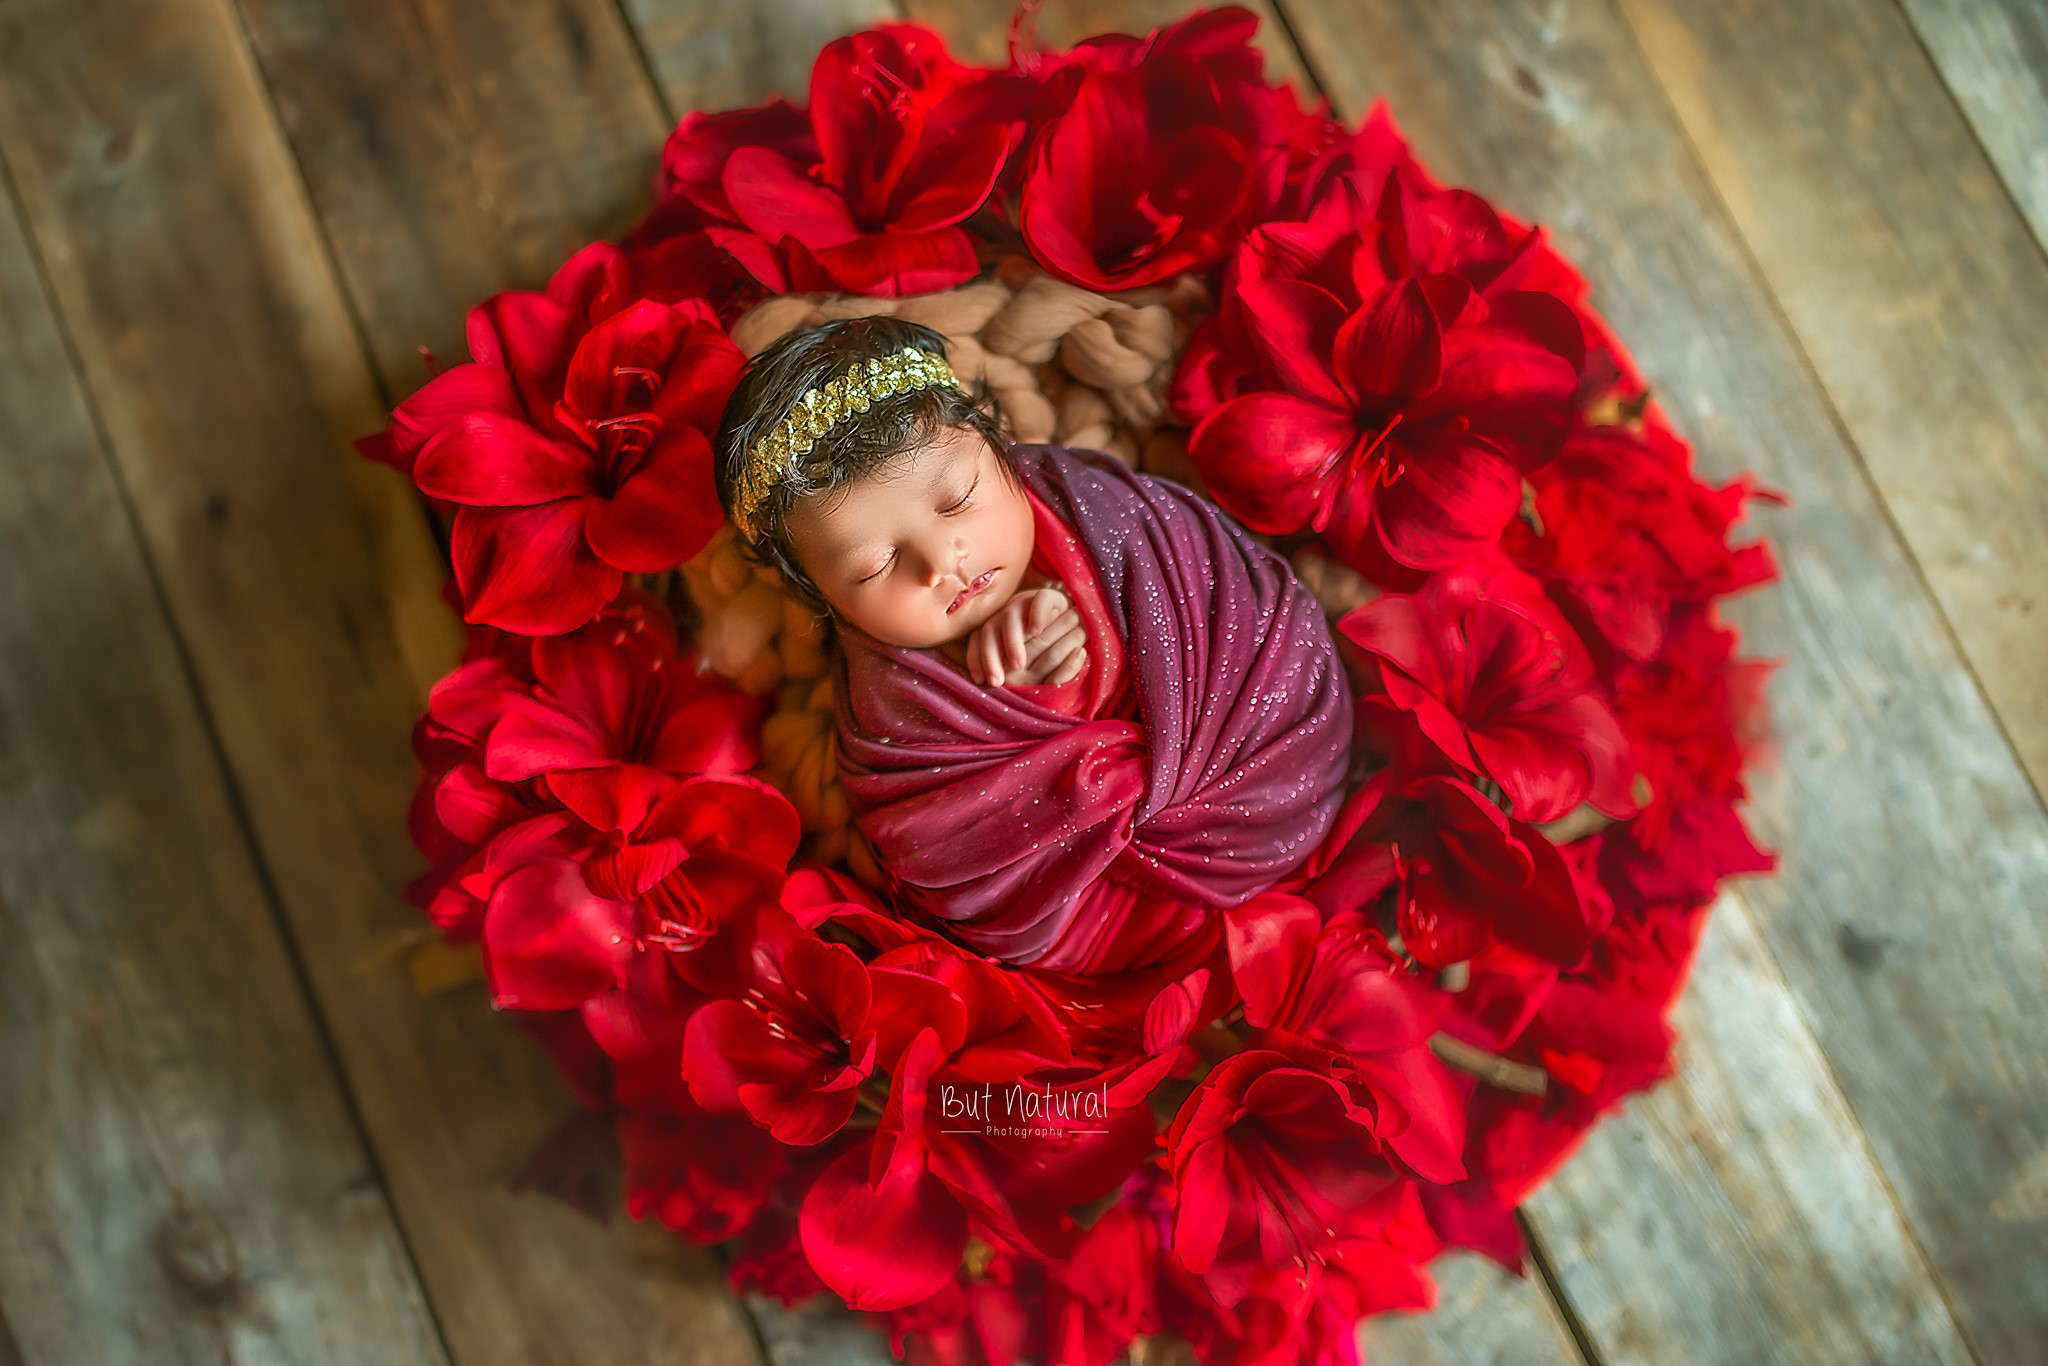 Newborn with flower prop for Newborn baby photoshoot | But Natural Photography